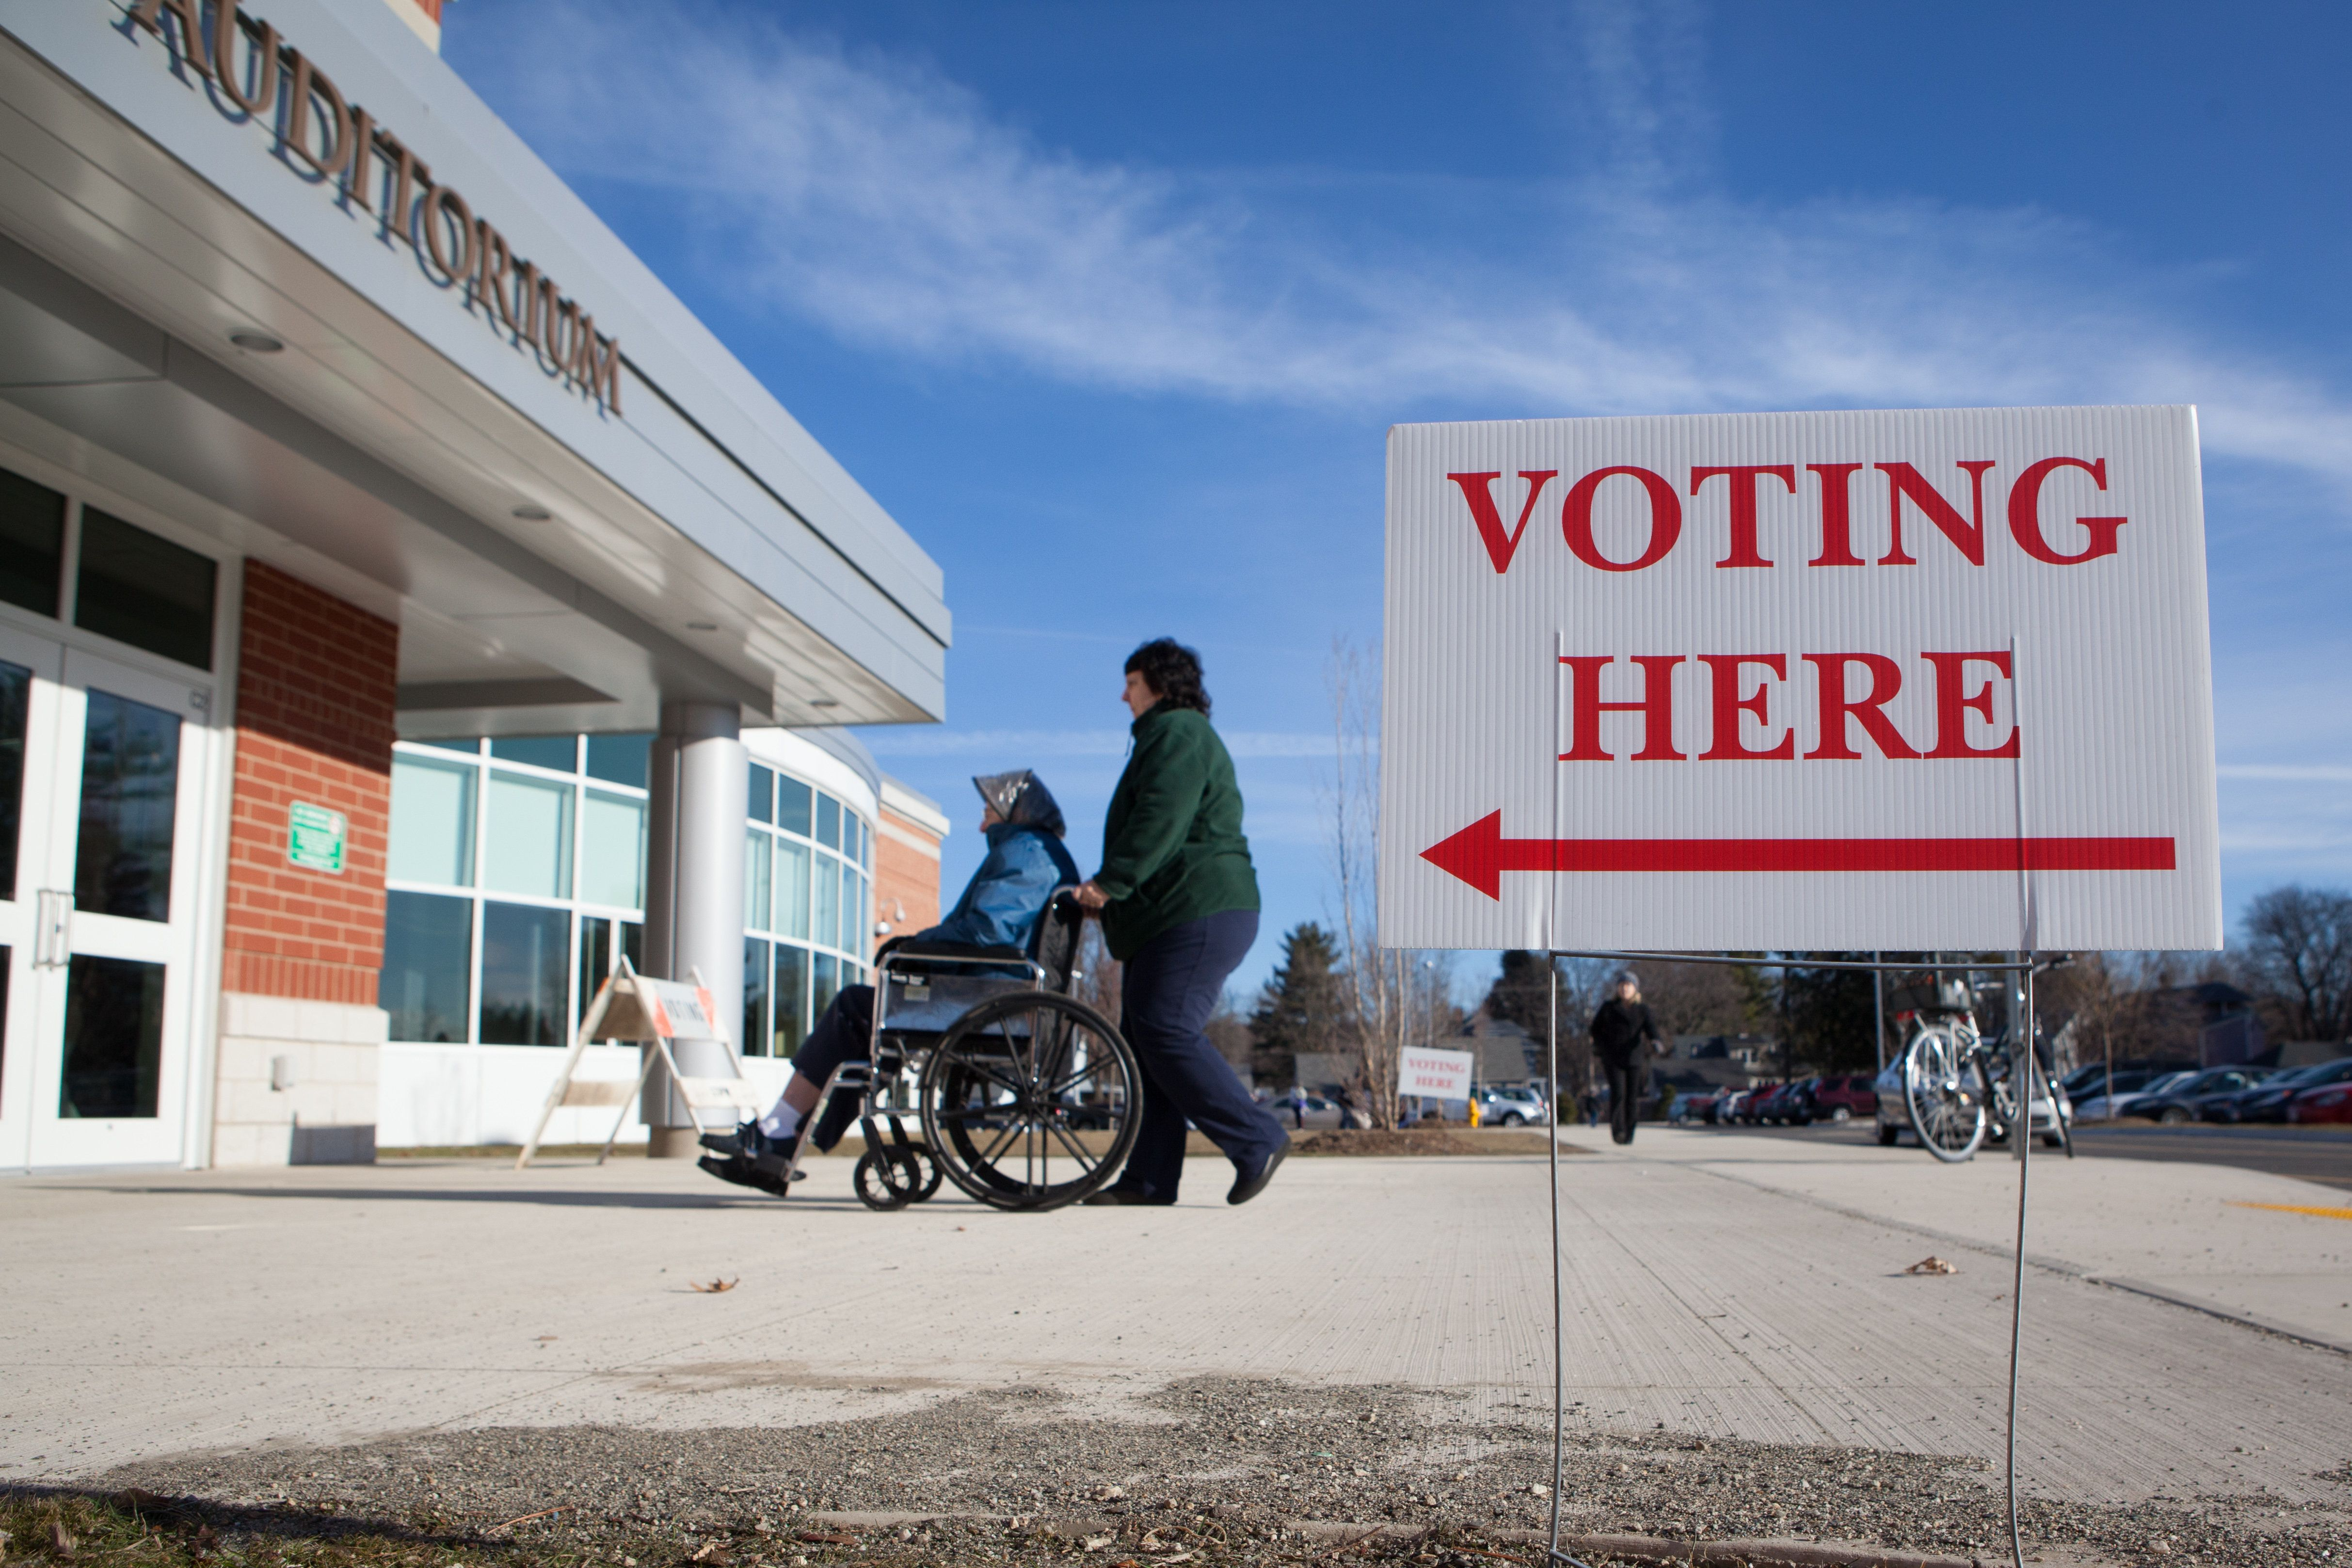 Voters enter a polling place inside Greenfield High School on March 1, 2016 in Greenfield, MA. (Photo by Matthew Cavanaugh/Ge